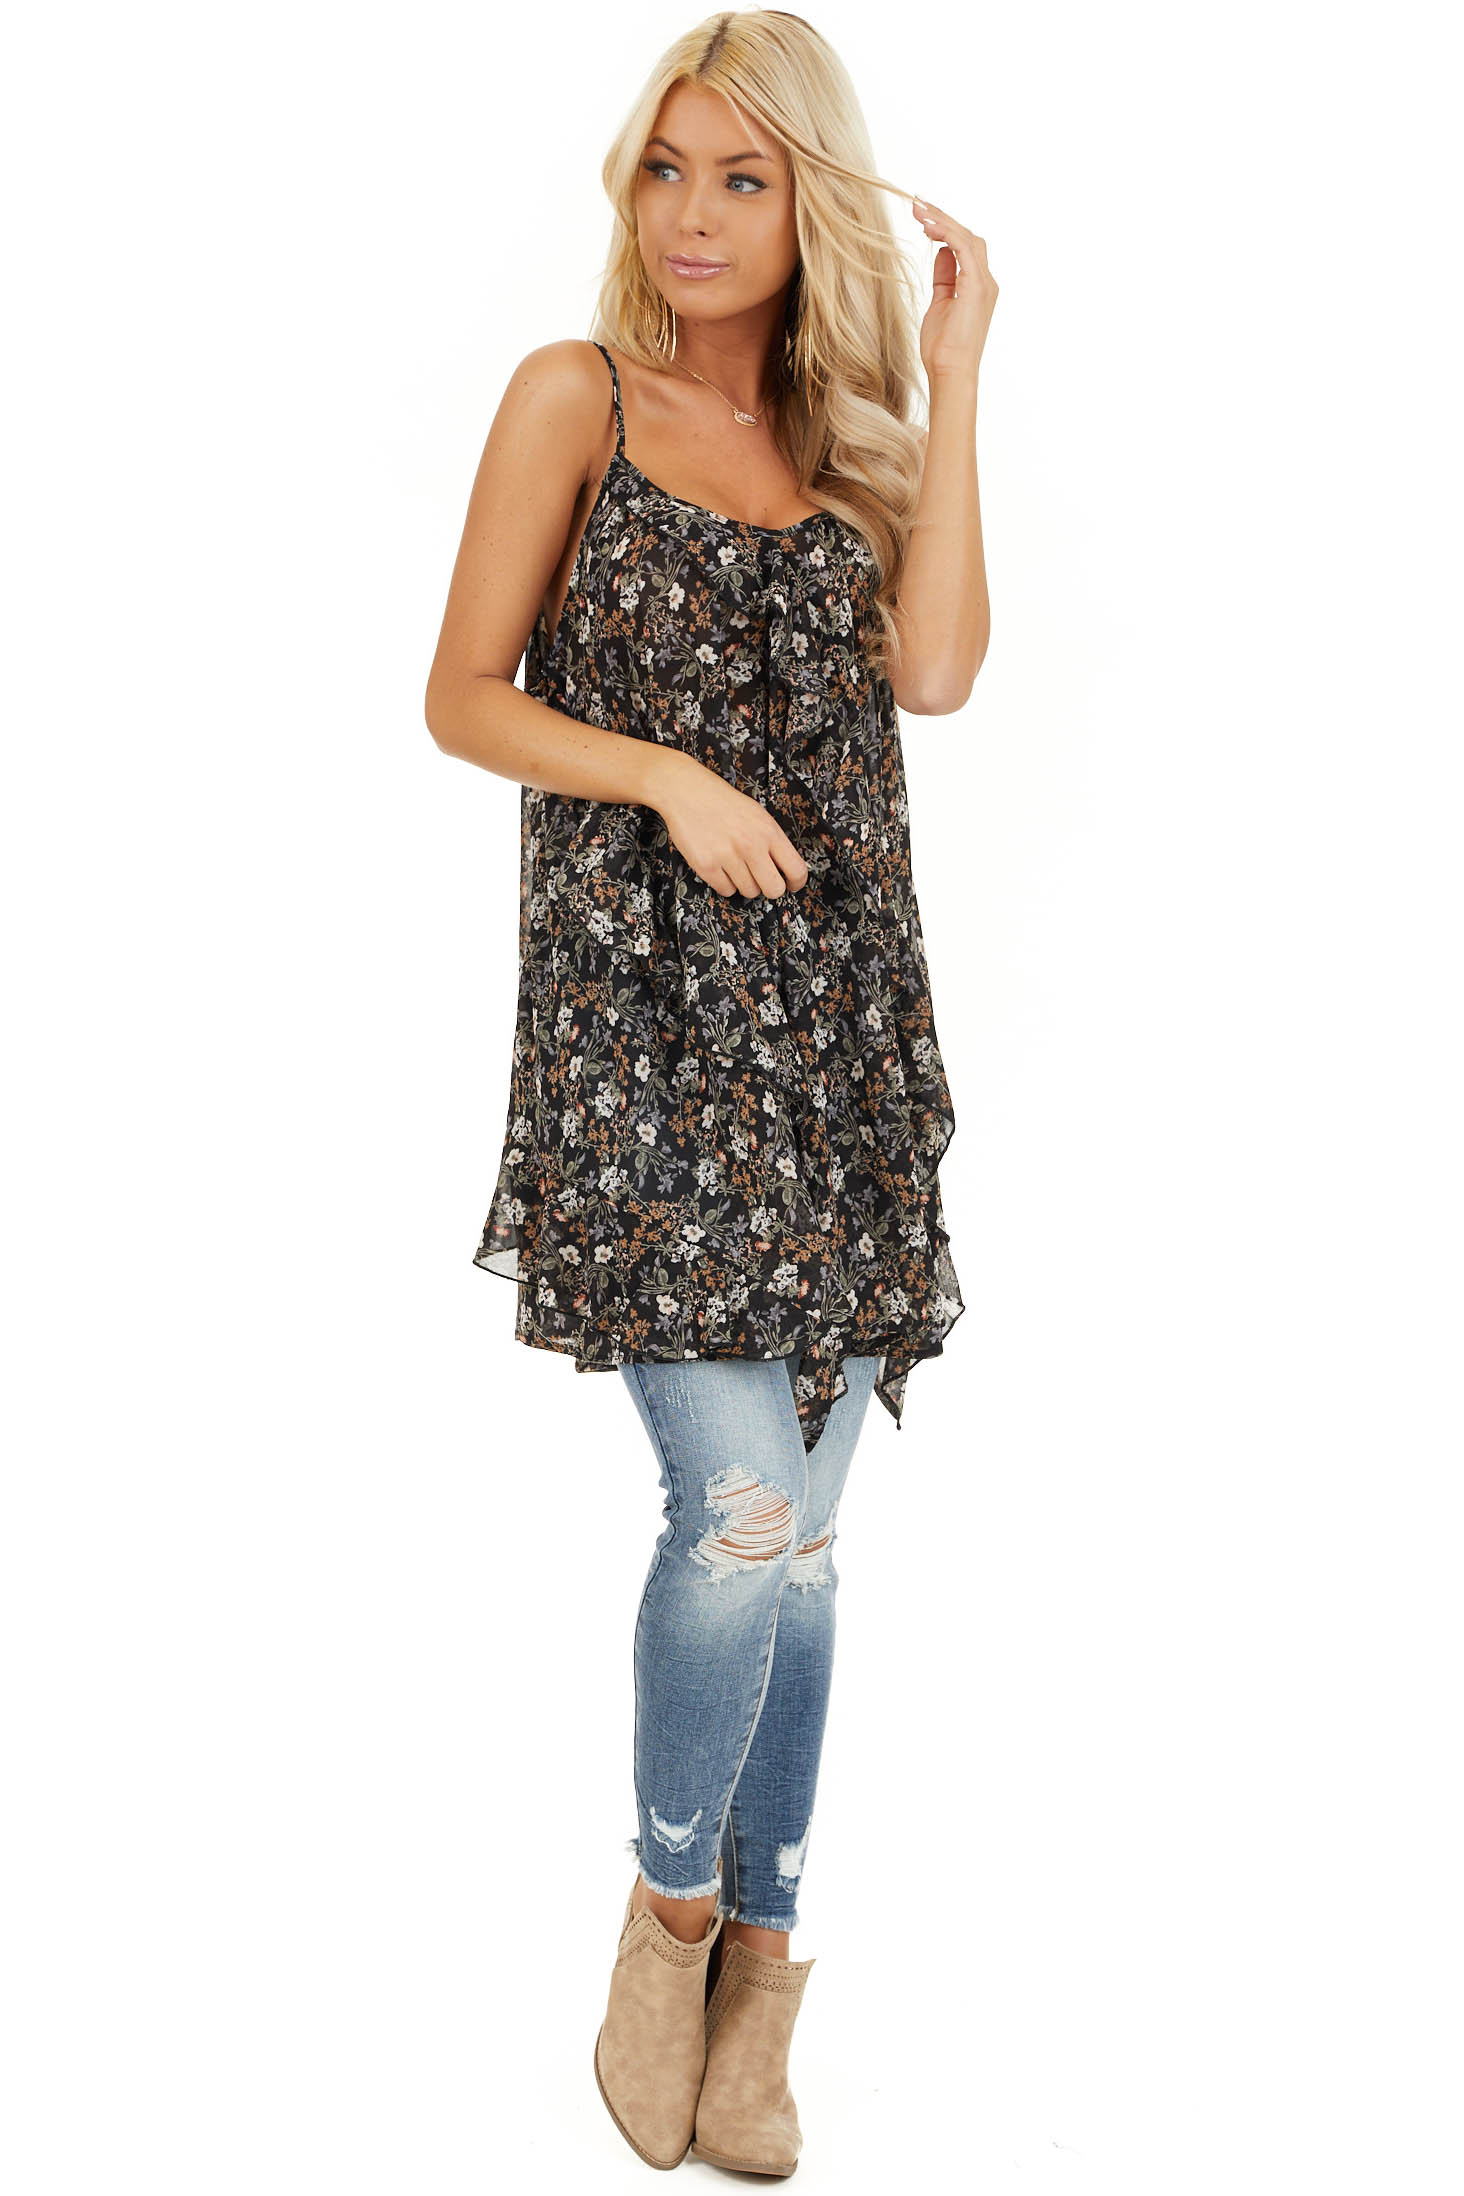 Raven Black Floral Print Cami Tunic Top with Ruffle Detail front full body